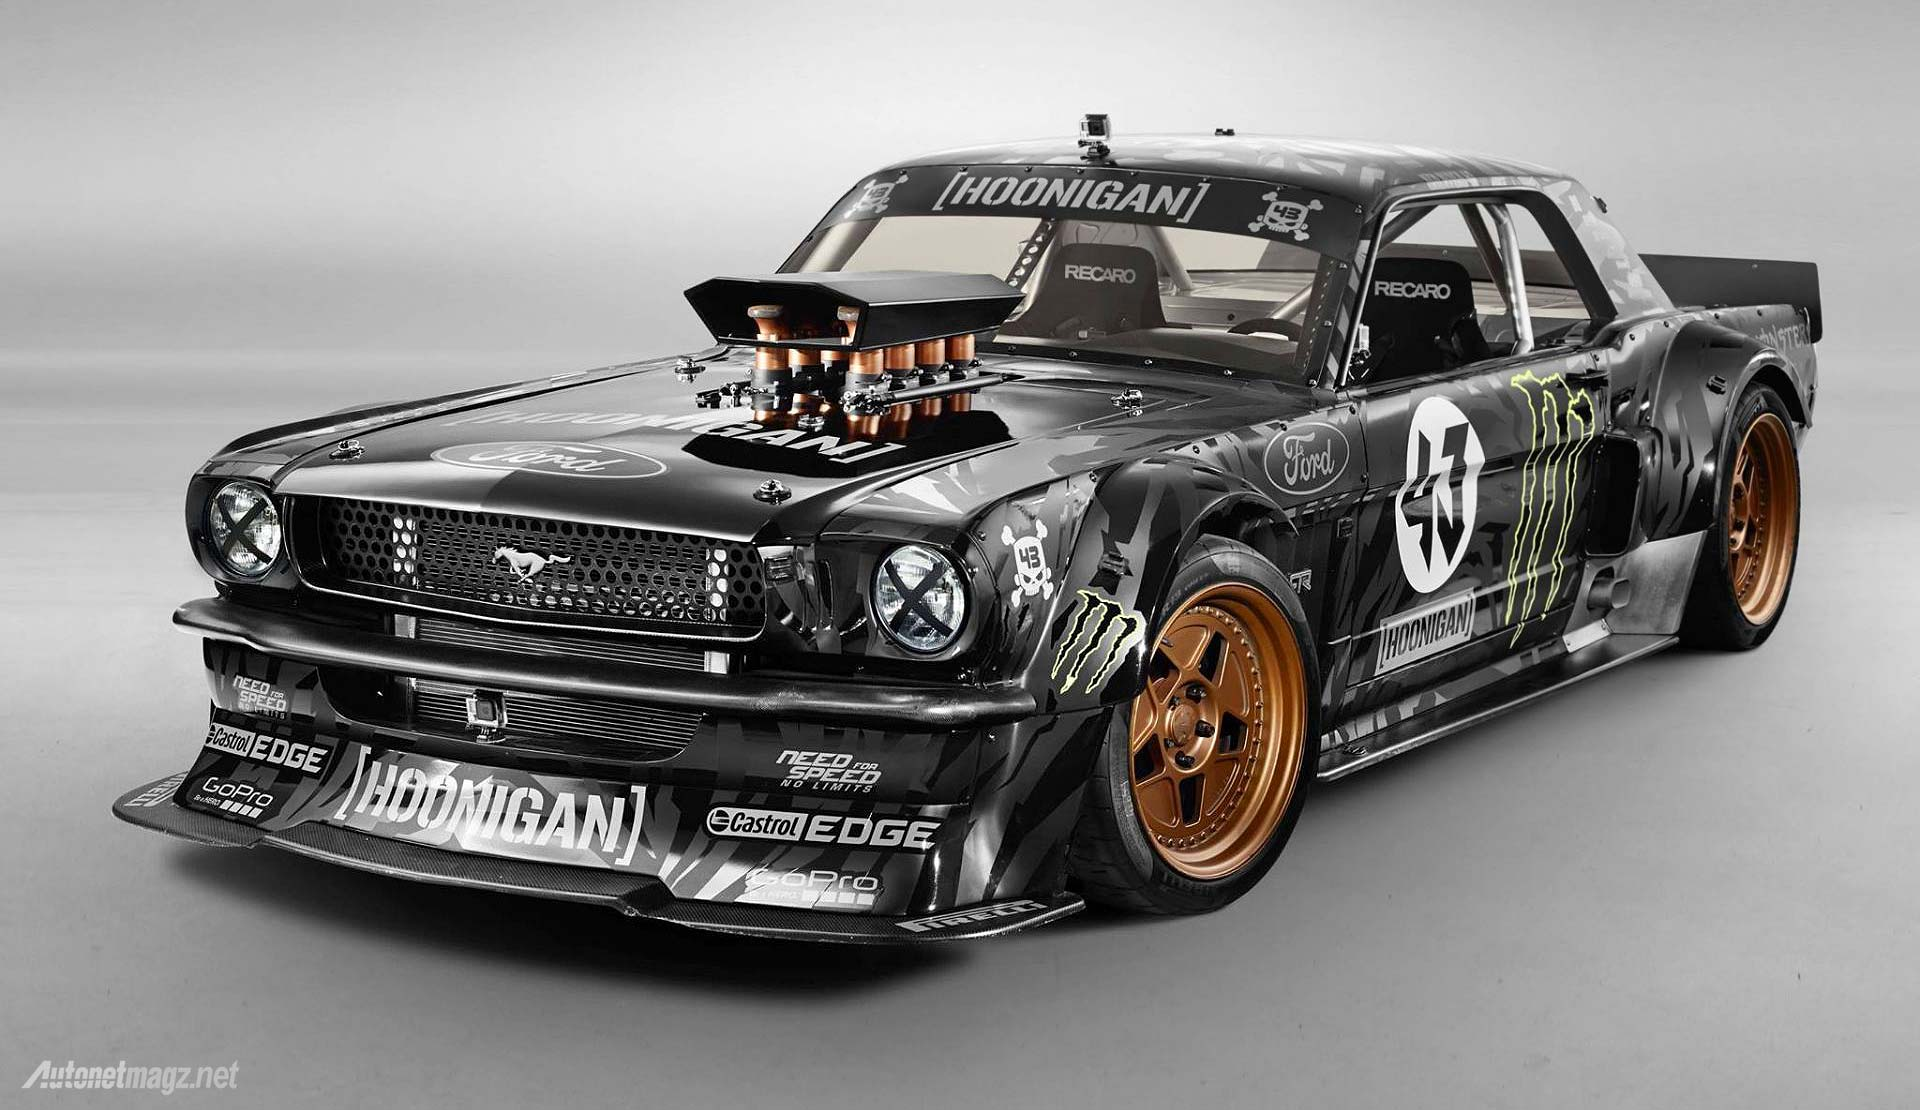 Ken block gymkhana new car ford mustang wallpaper autonetmagz